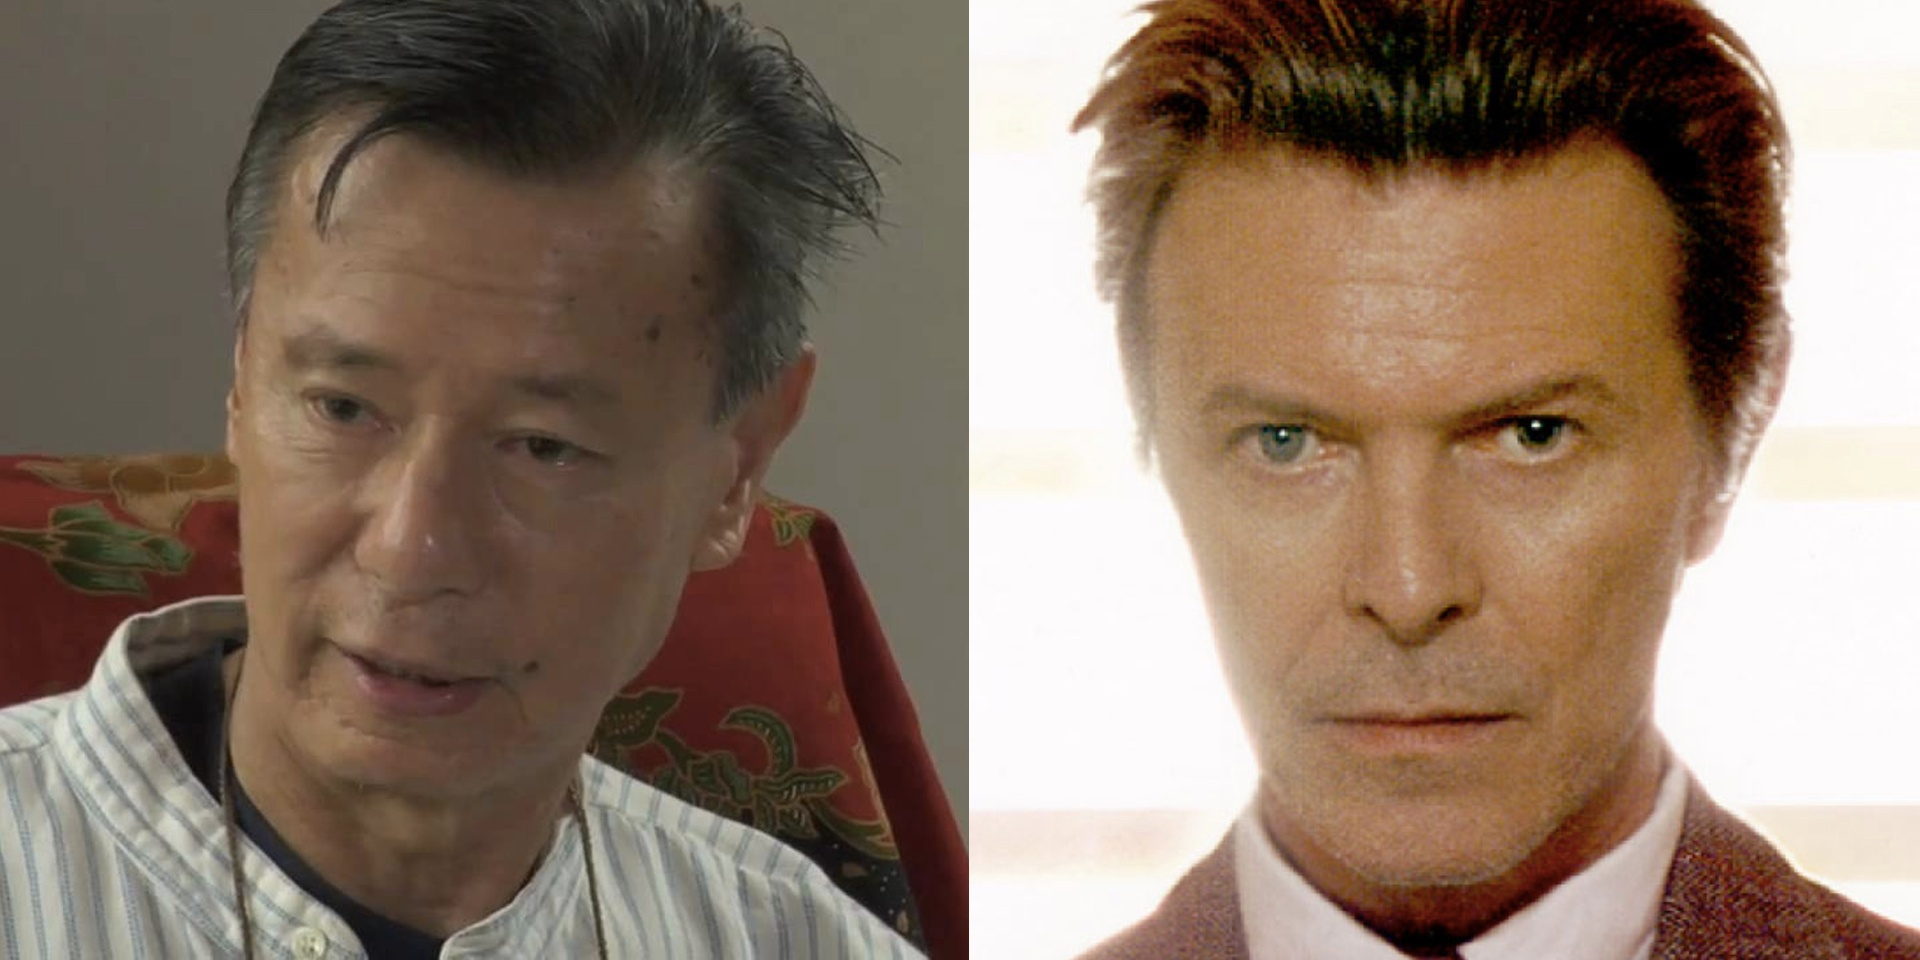 Goh Poh Seng: the fearless poet who fought to bring David Bowie to Singapore